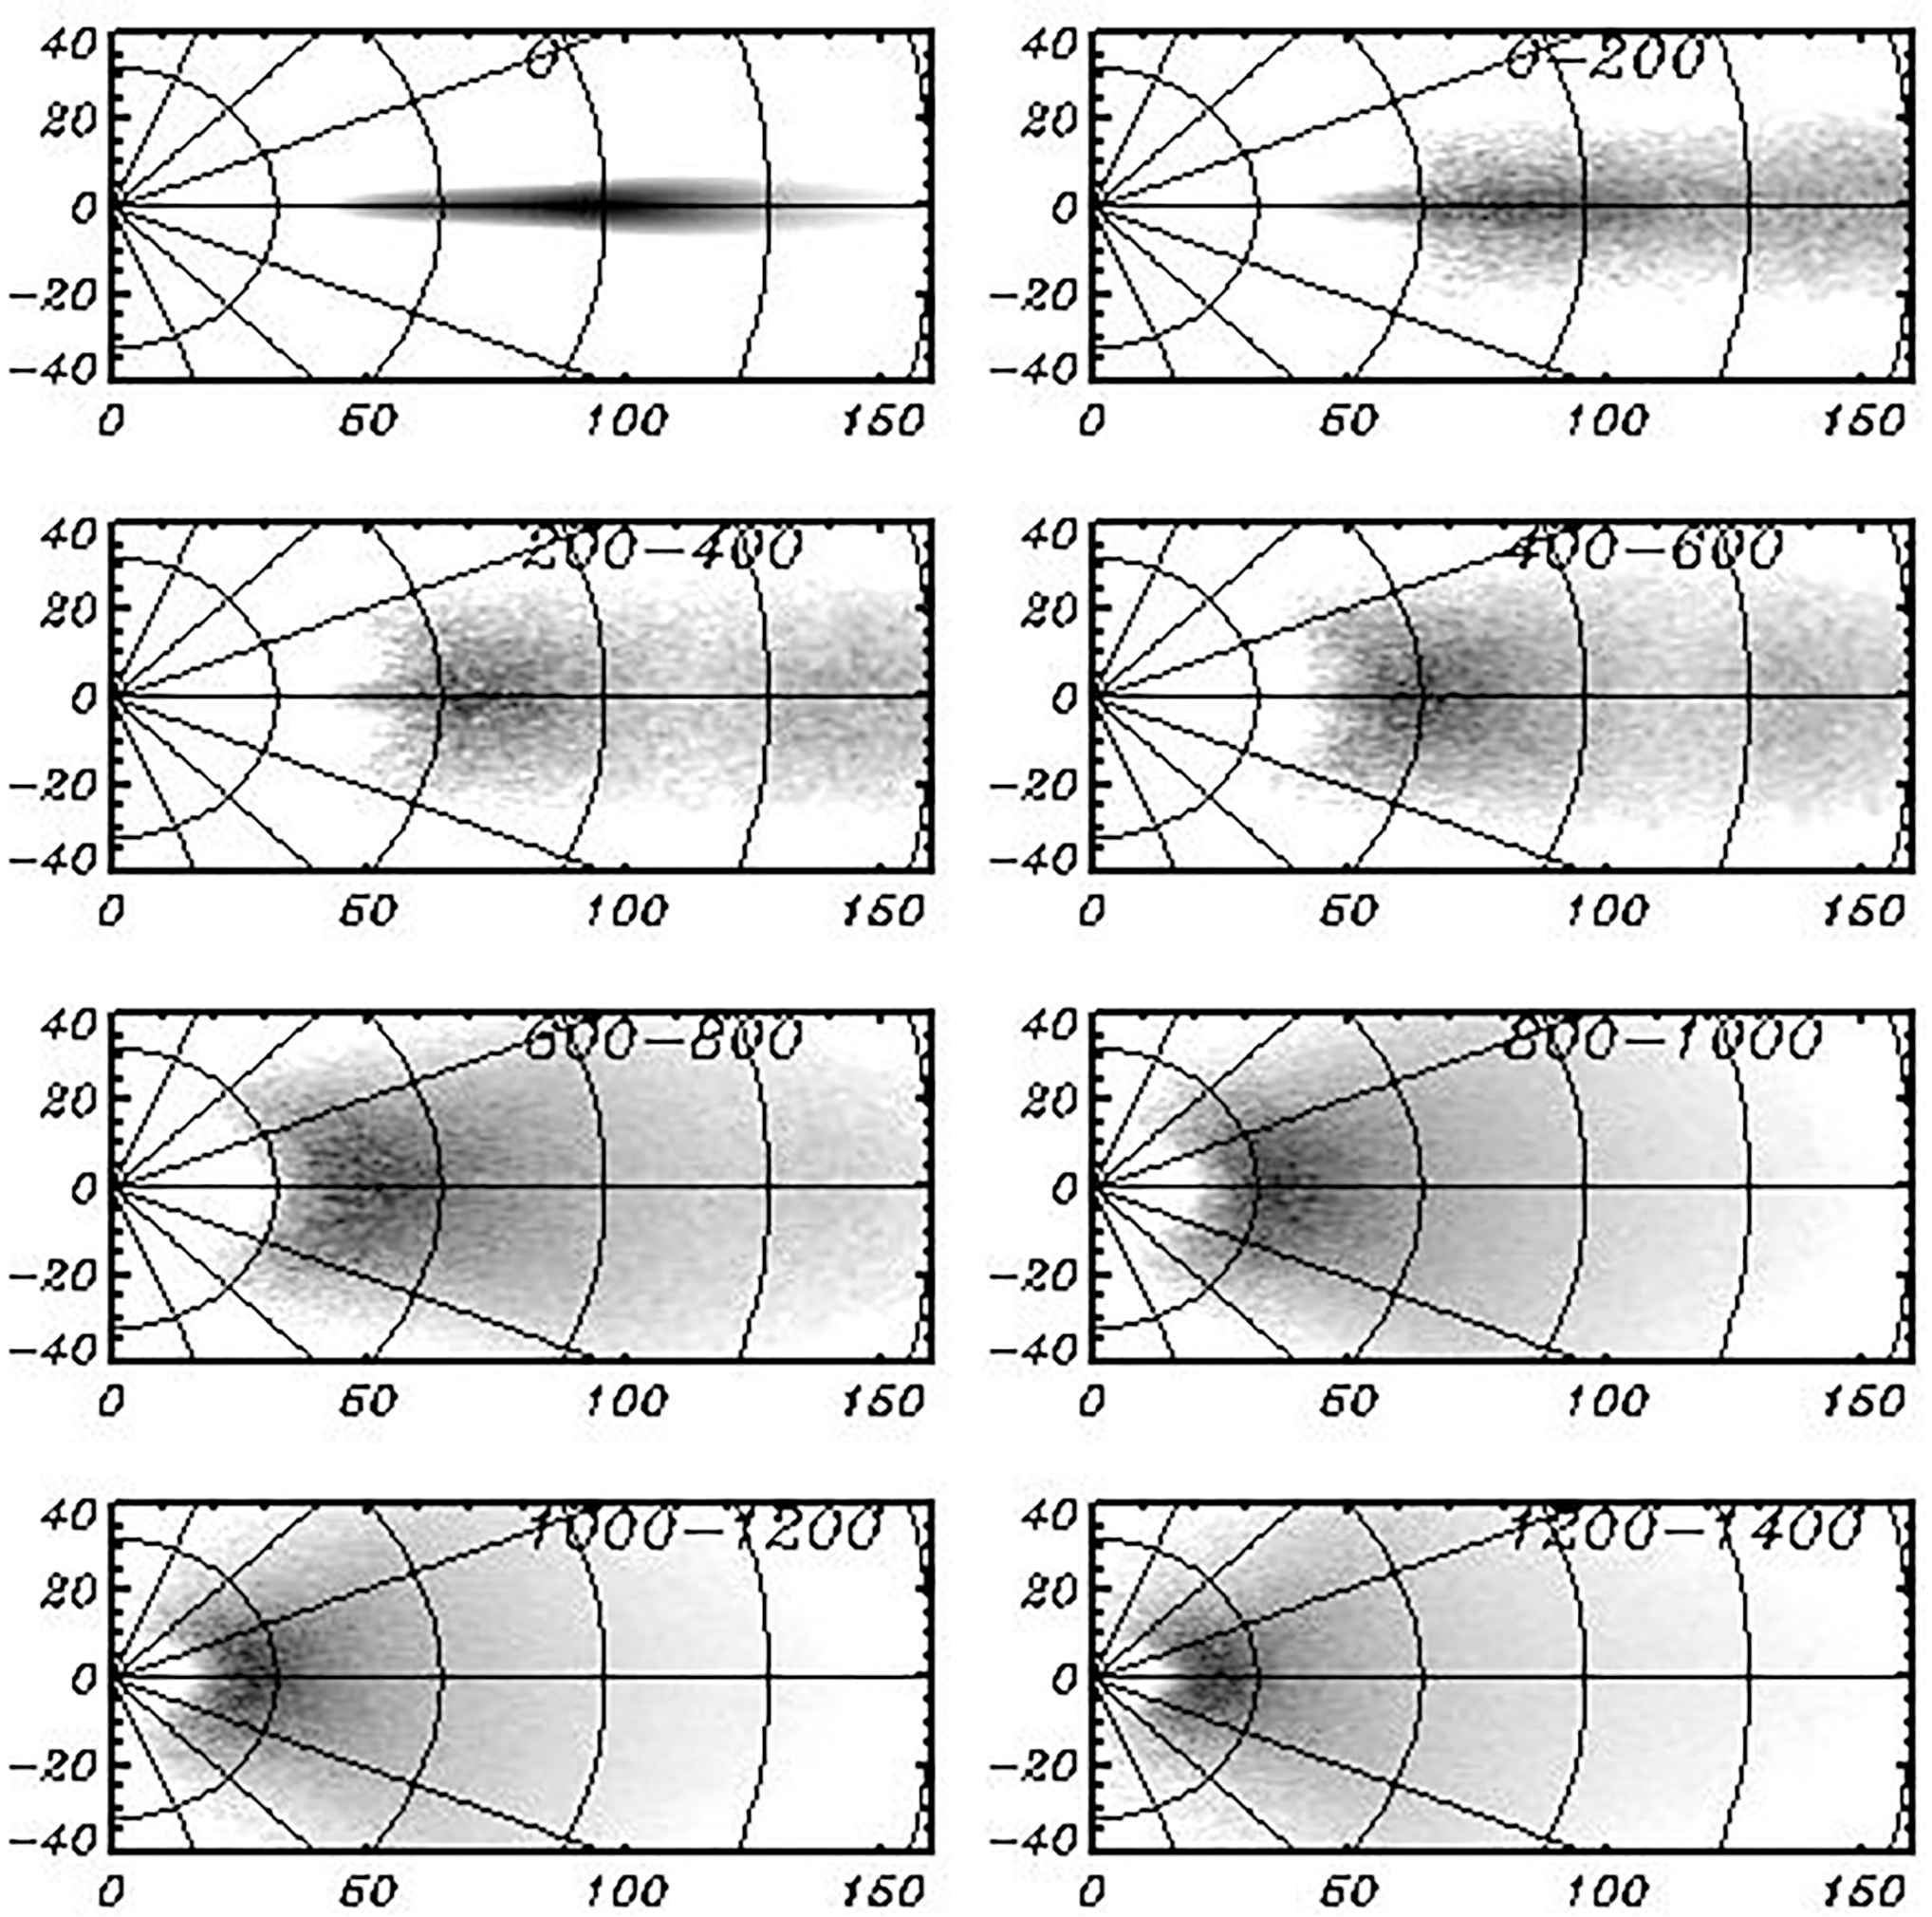 OS - Numerical modeling of surface wave development under